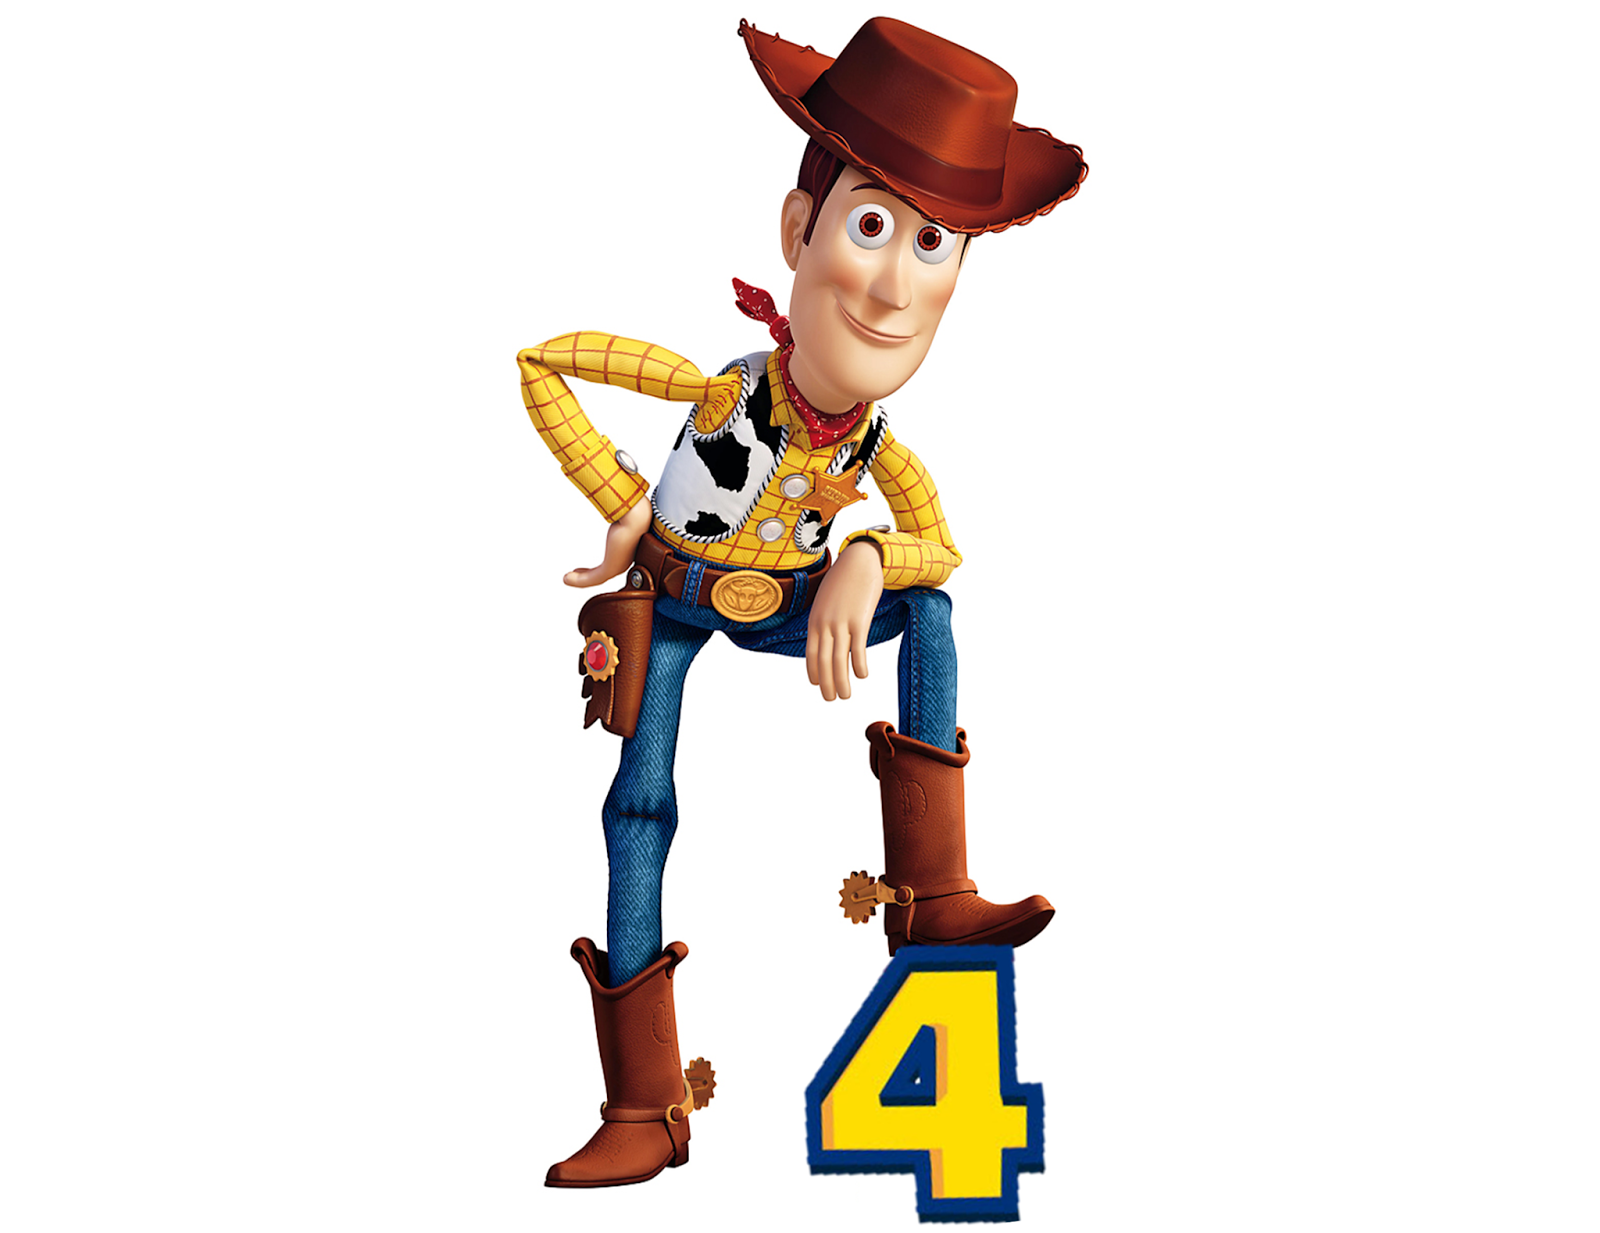 Toy Story 4 Toys : Toy story lincoln high school statesman